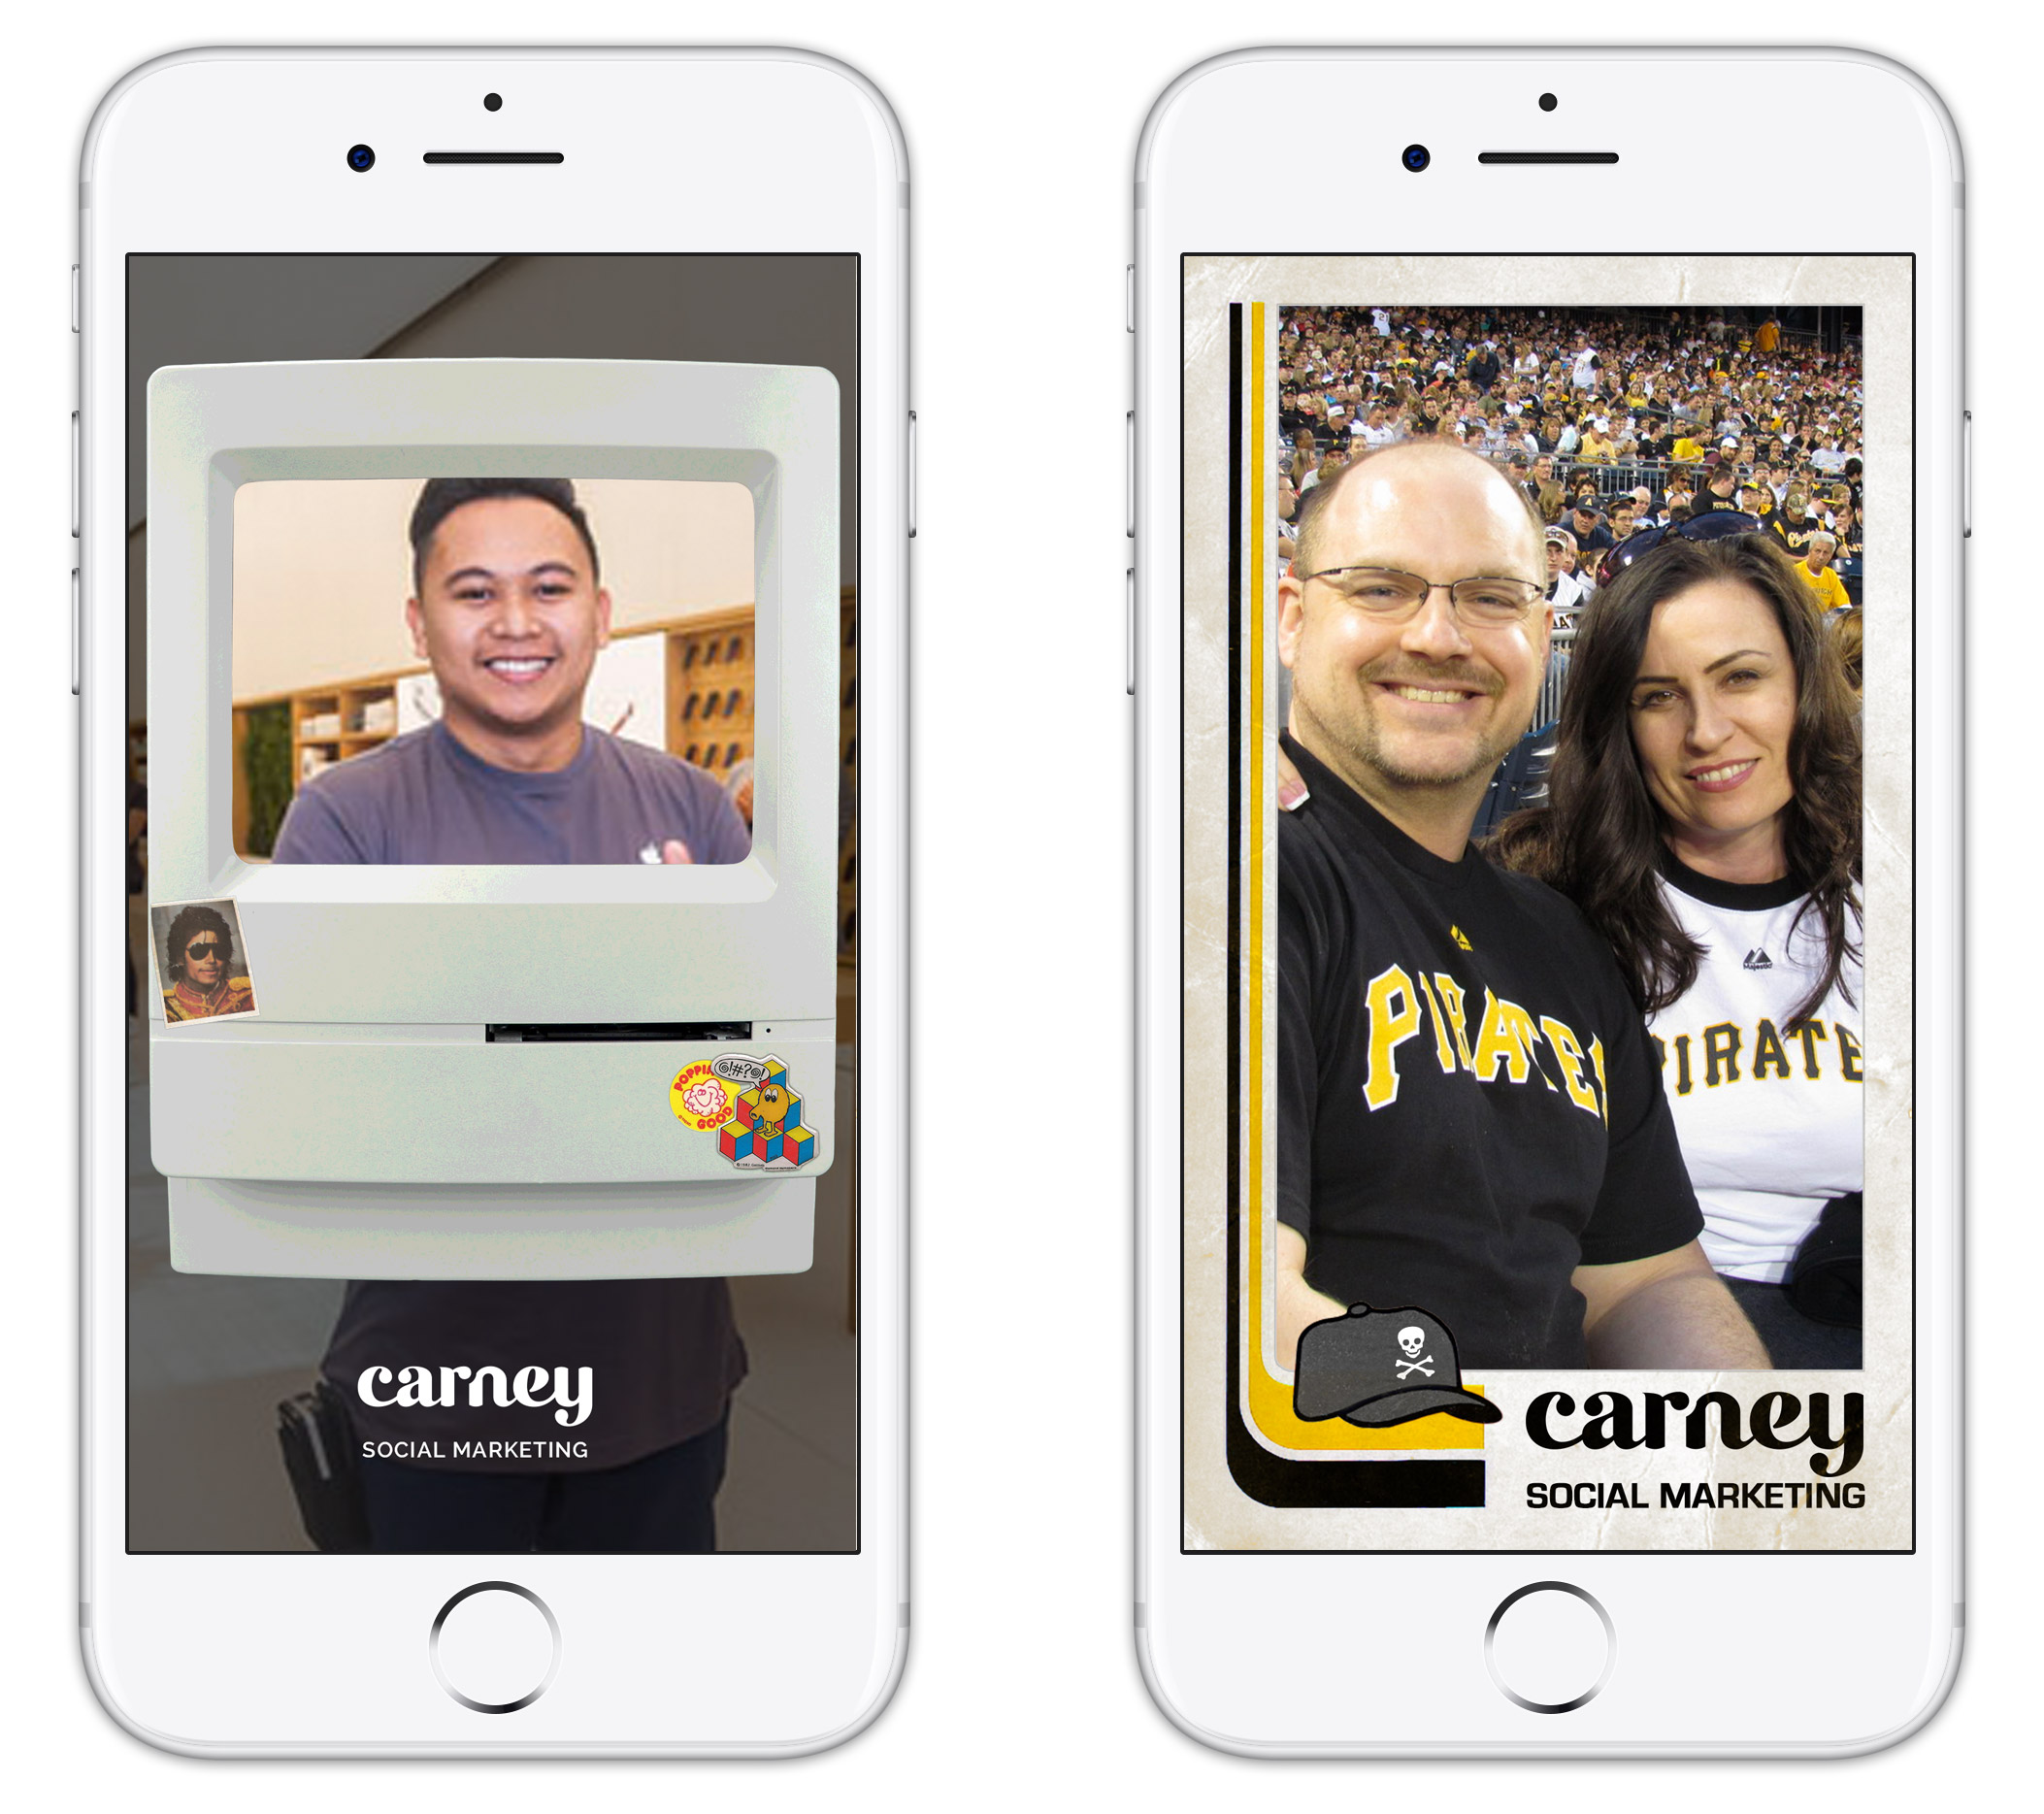 Carney Snapchat Geofilters